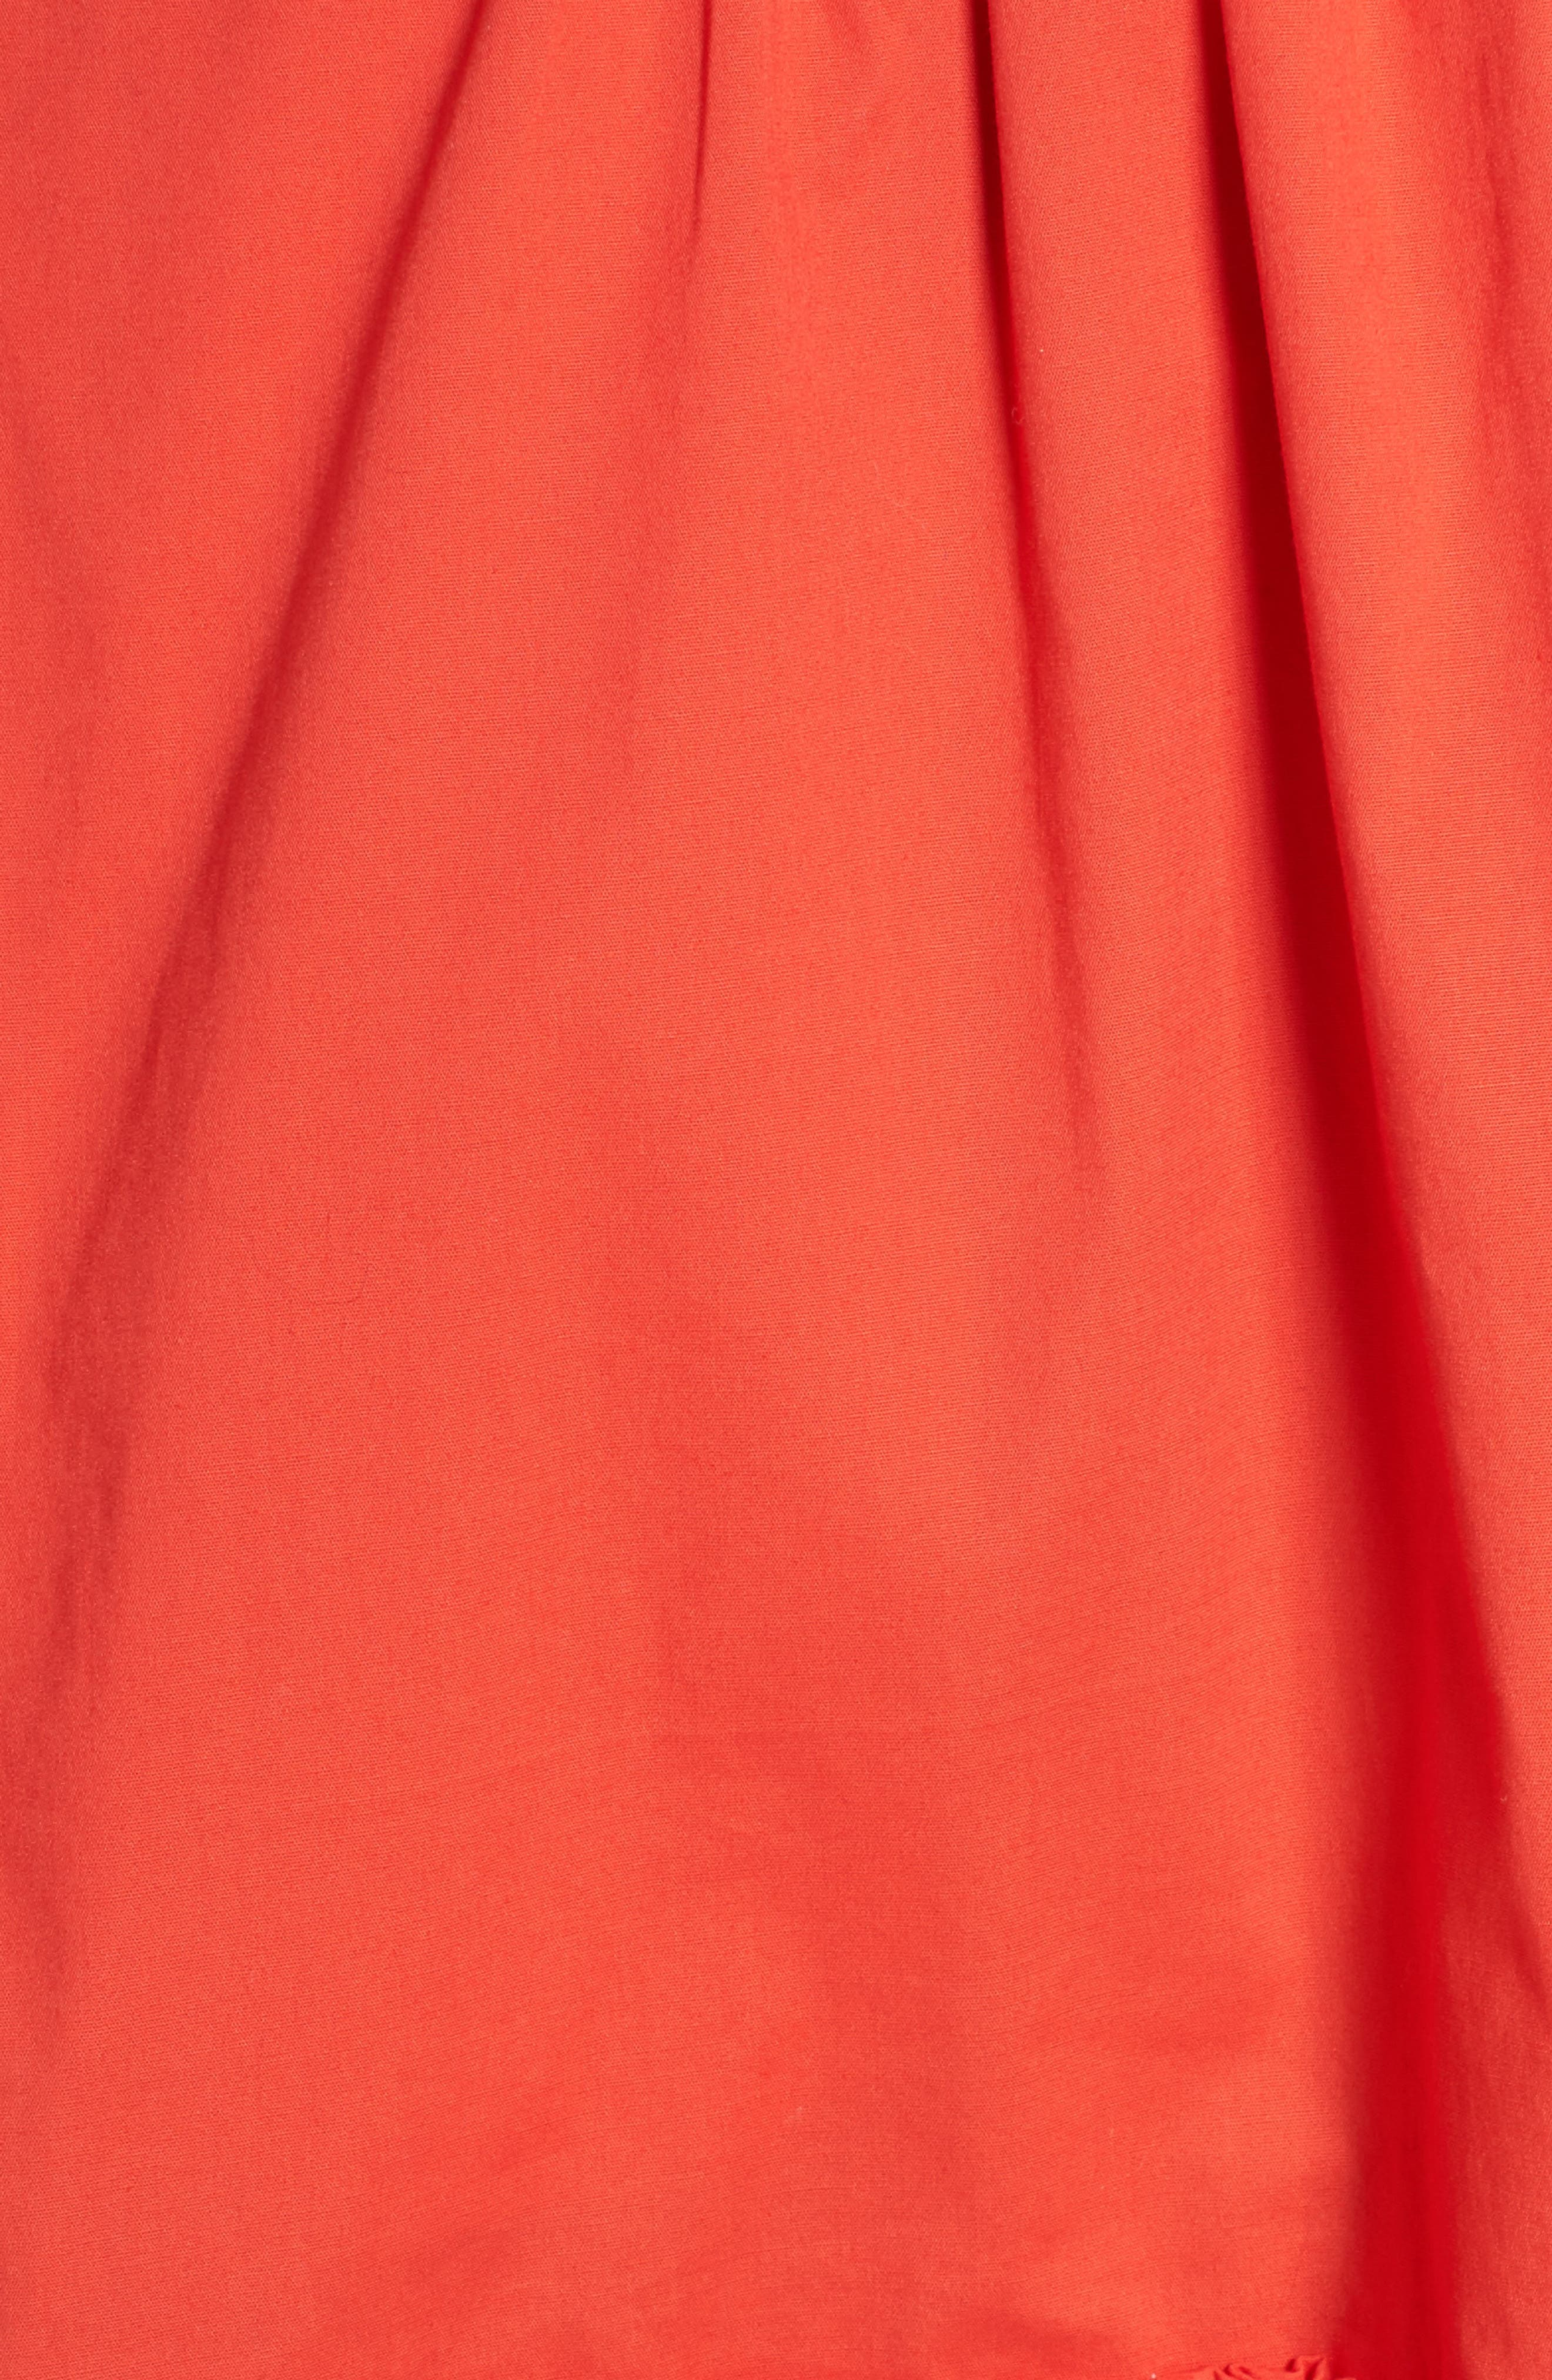 Pleat Collar Fit & Flare Dress,                             Alternate thumbnail 6, color,                             Red Bloom